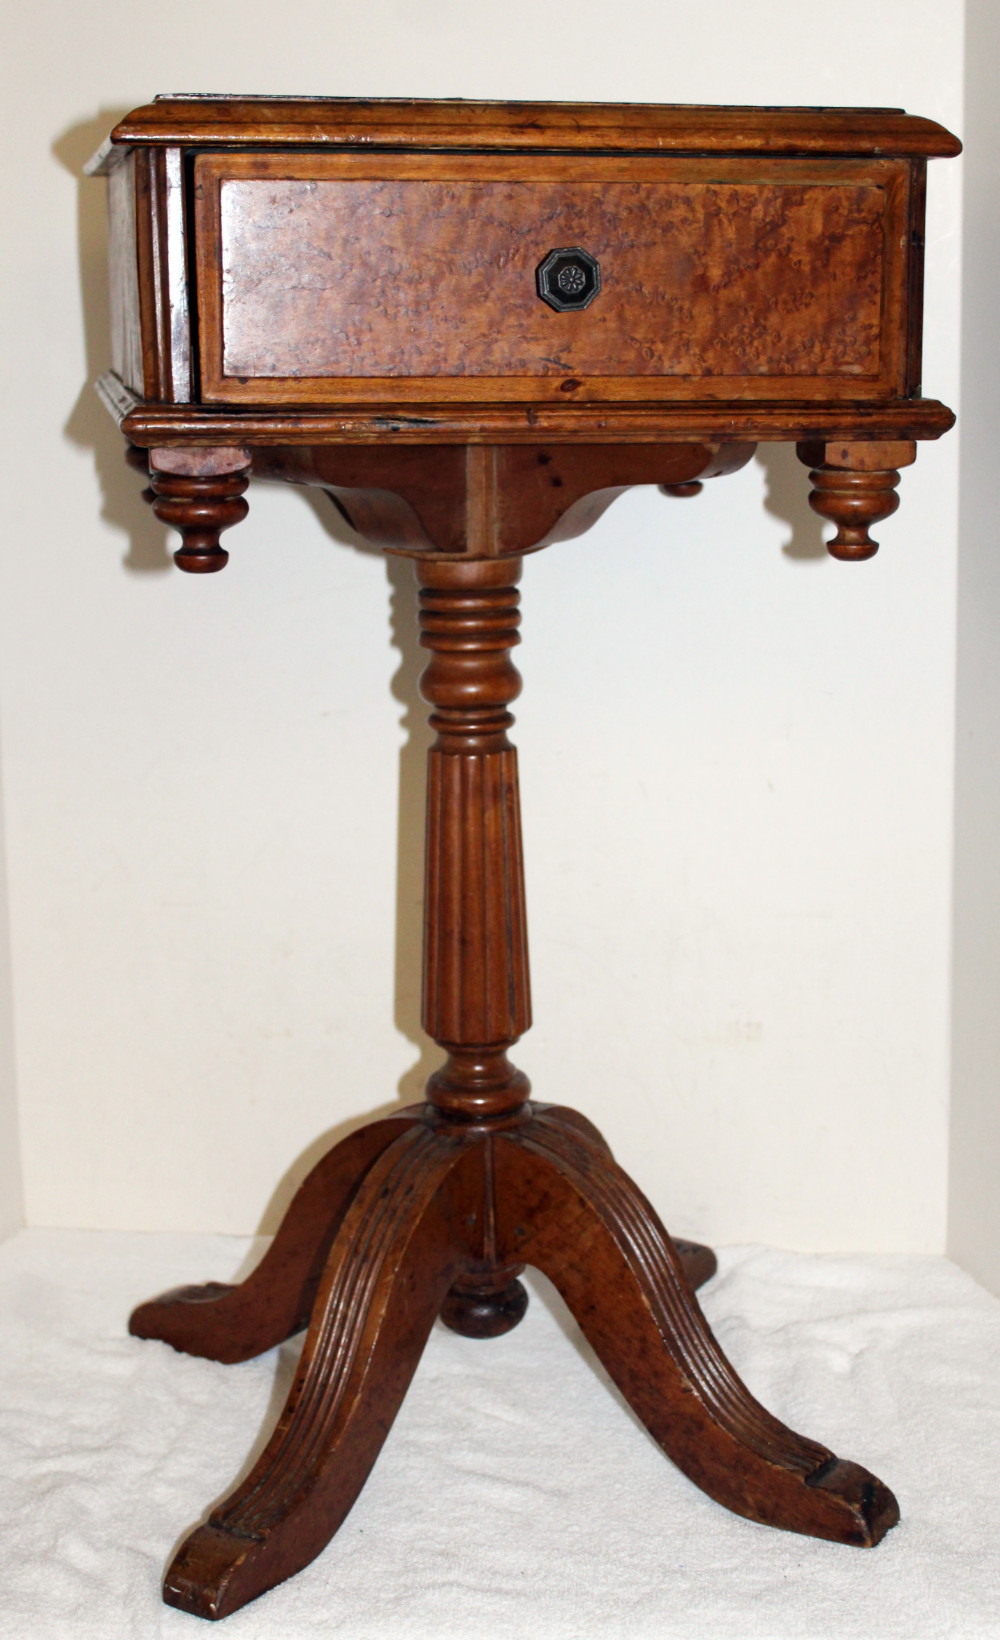 How to Sell Antique Furniture On Ebay Beautiful Details About Antique Burl Wood Telephone Desk Stand Occasional Table Dovetailed Drawer